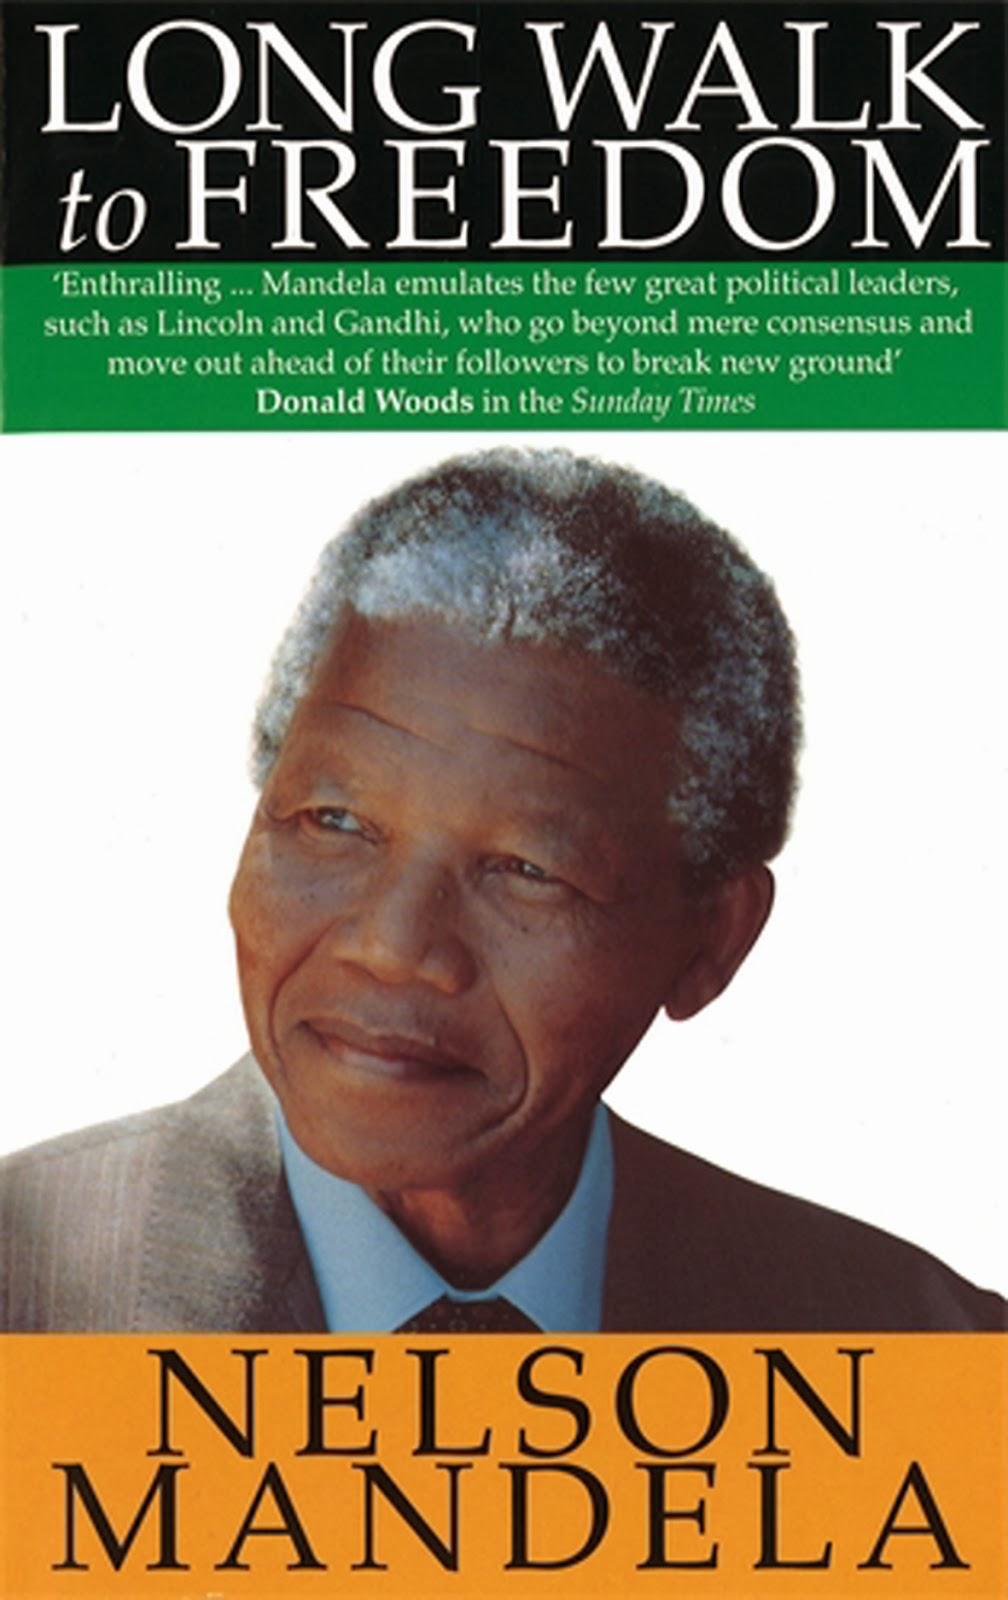 http://discover.halifaxpubliclibraries.ca/?q=title:mandela%20long%20walk%20freedom